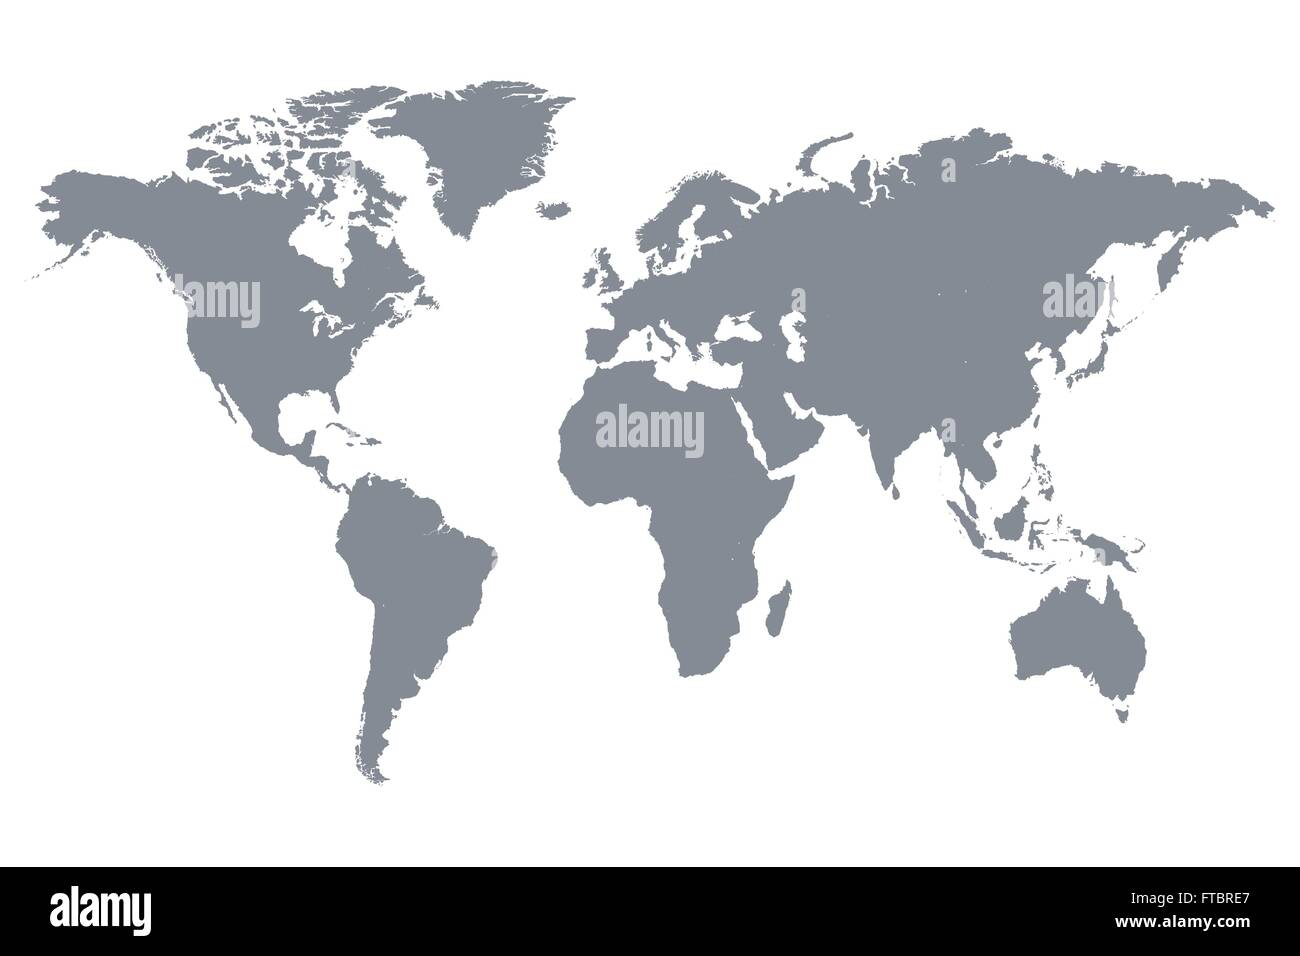 Grey world map vector illustration stock vector art illustration grey world map vector illustration gumiabroncs Gallery